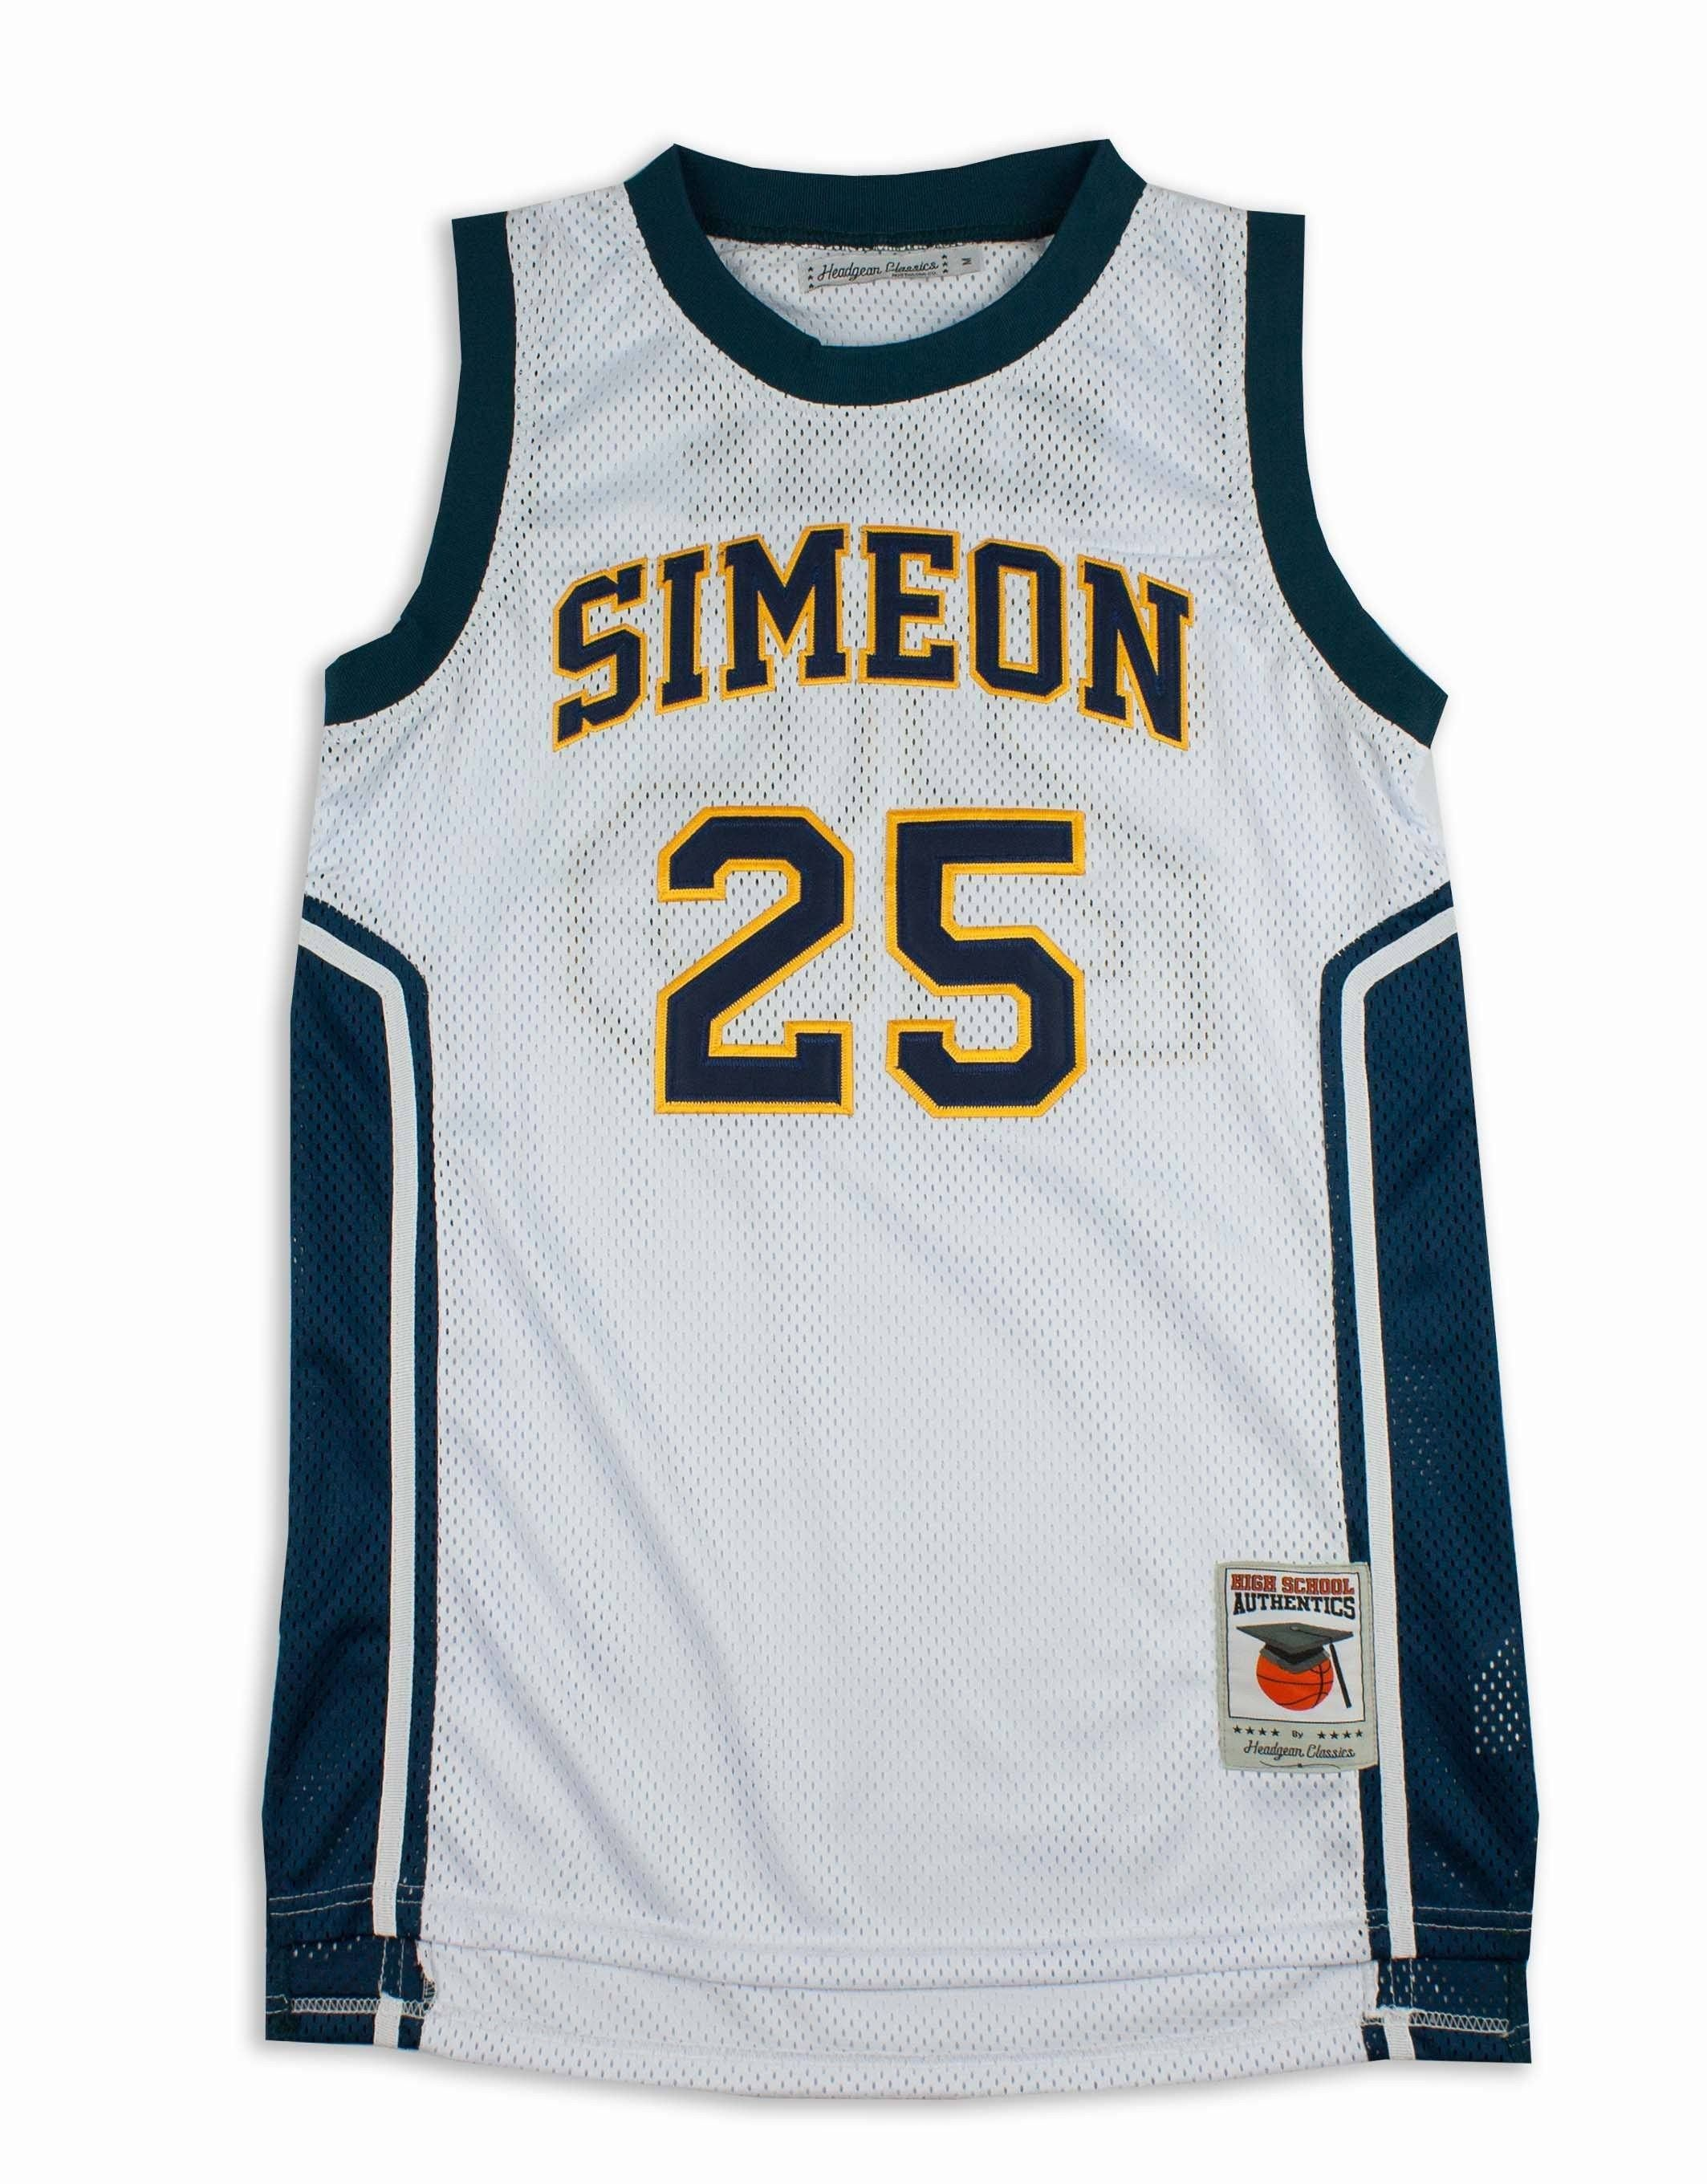 on sale 2b547 0cea1 Derrick Rose Simeon High School Retro Basketball Jersey ...